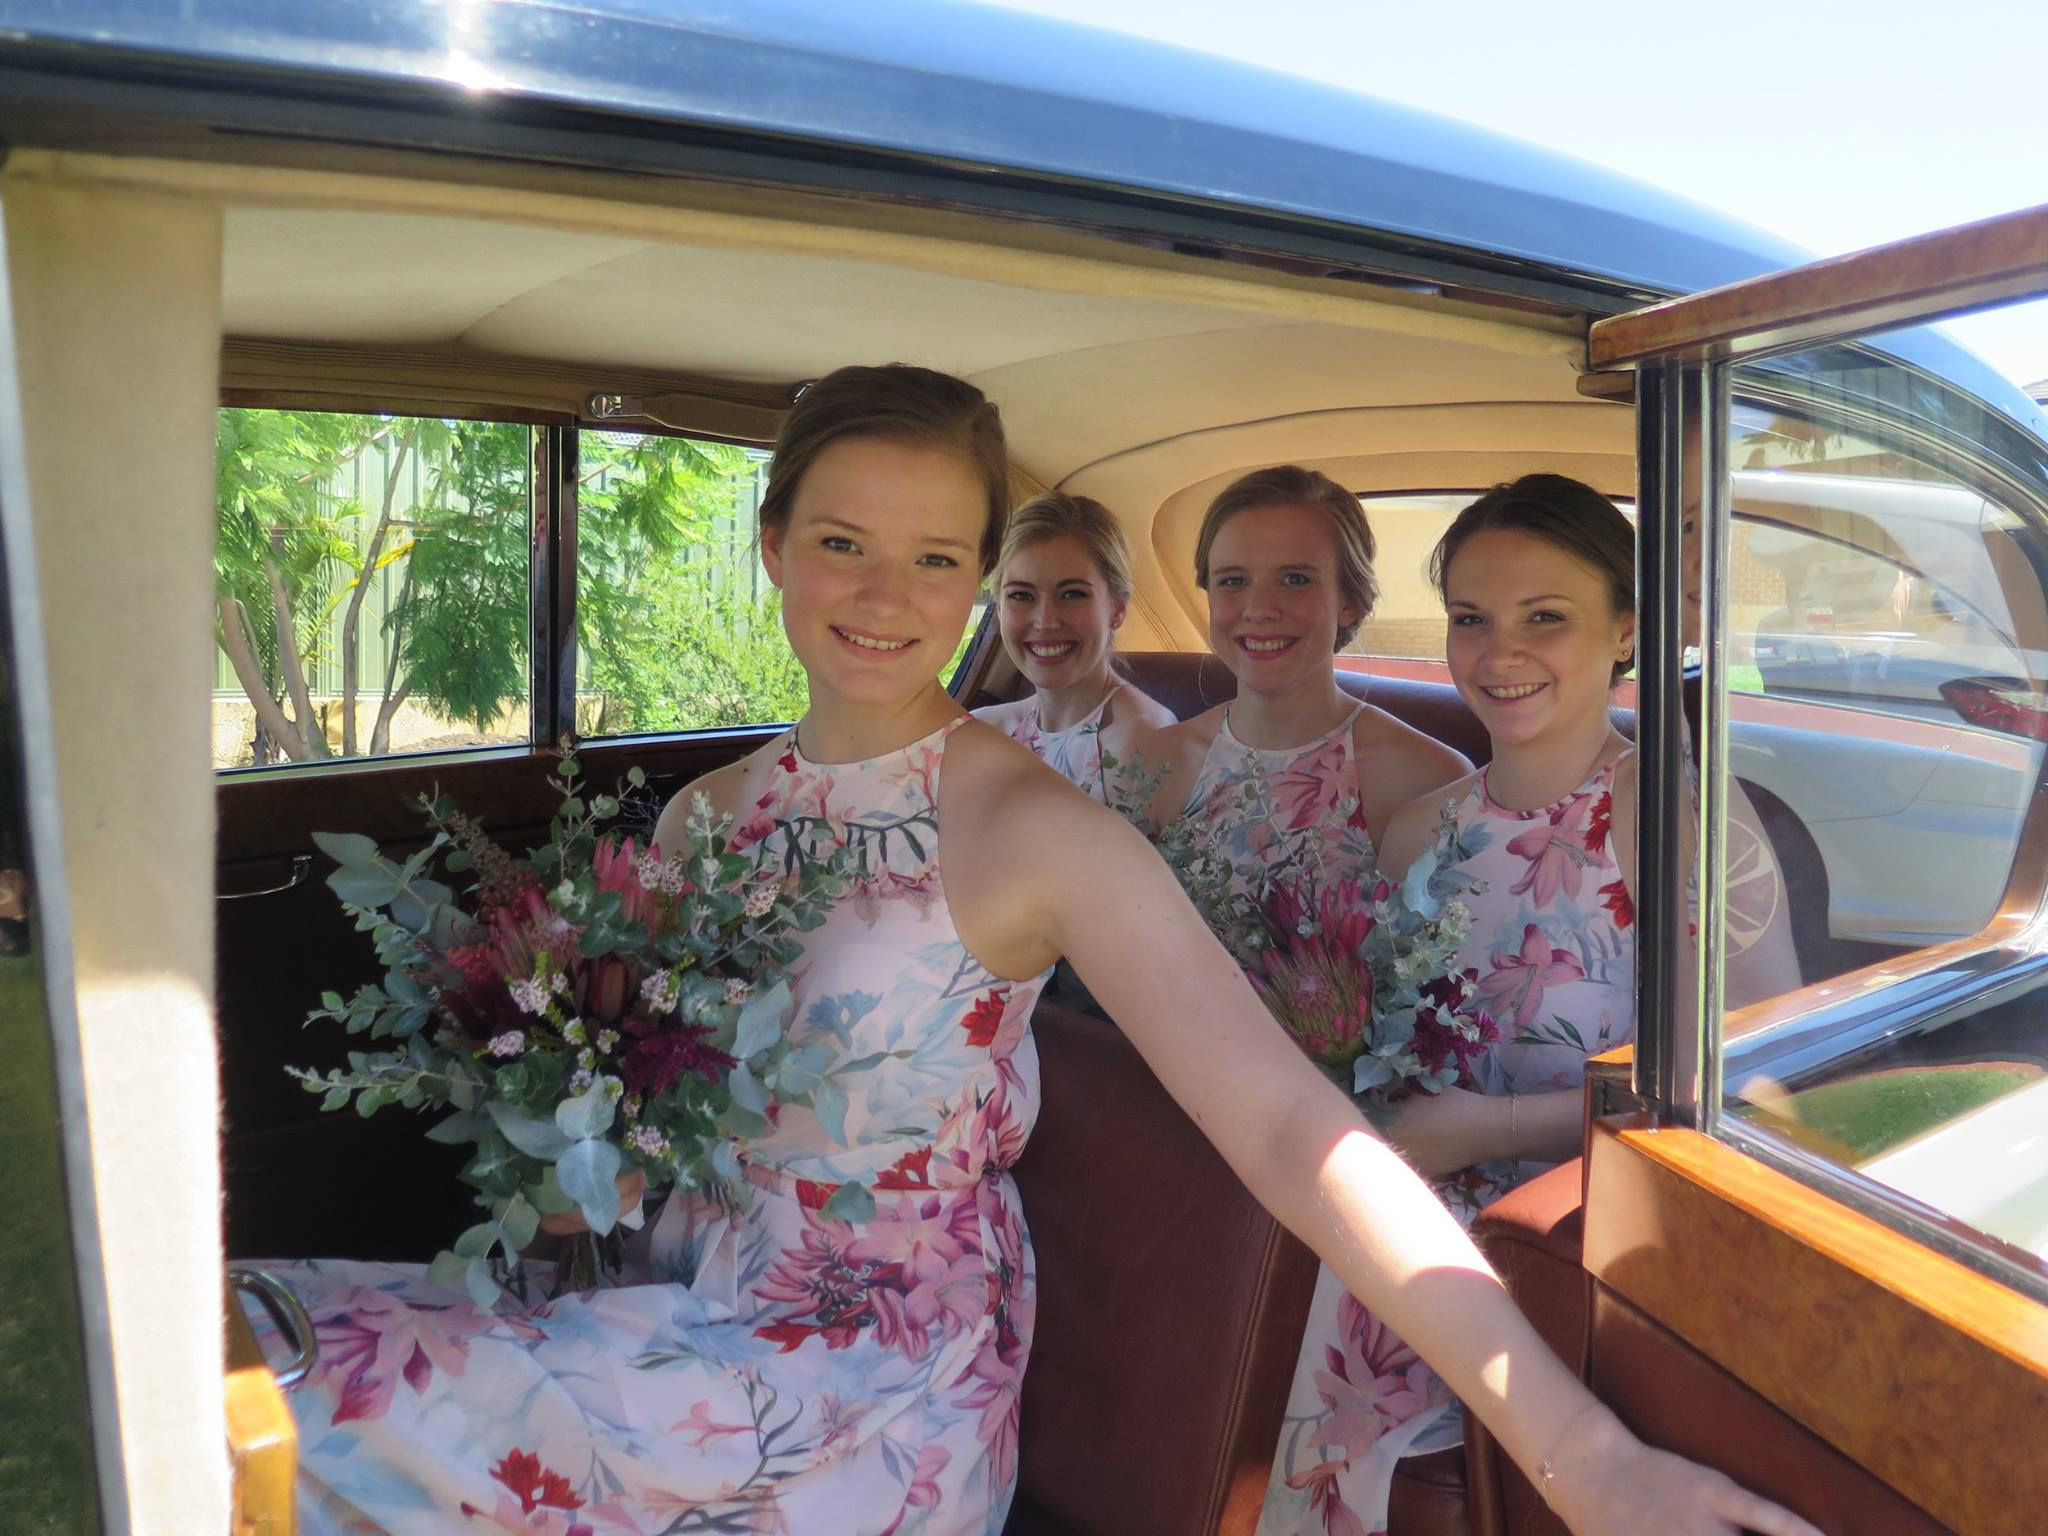 16a-Kaitlins_girls_in_Very_Nice_Classics_wedding_car_Perth_February_2017.jpg